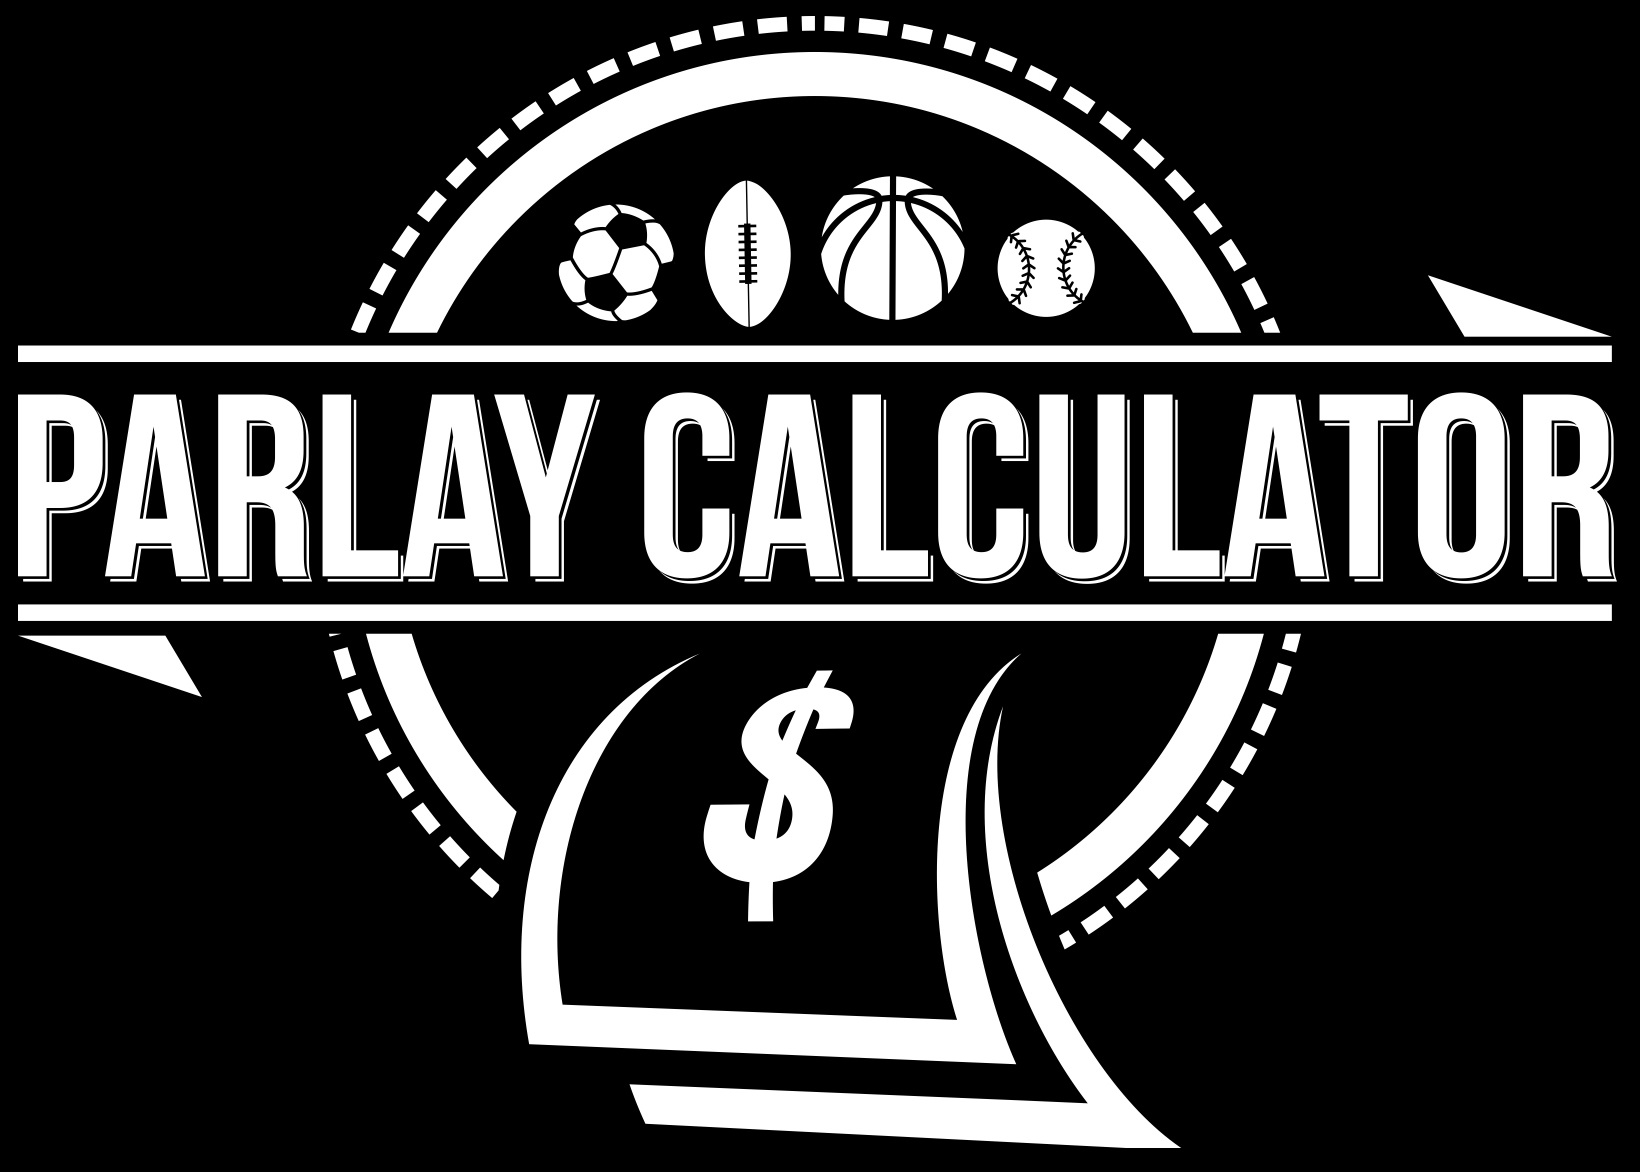 which forms do parlay bonuses and promotions have